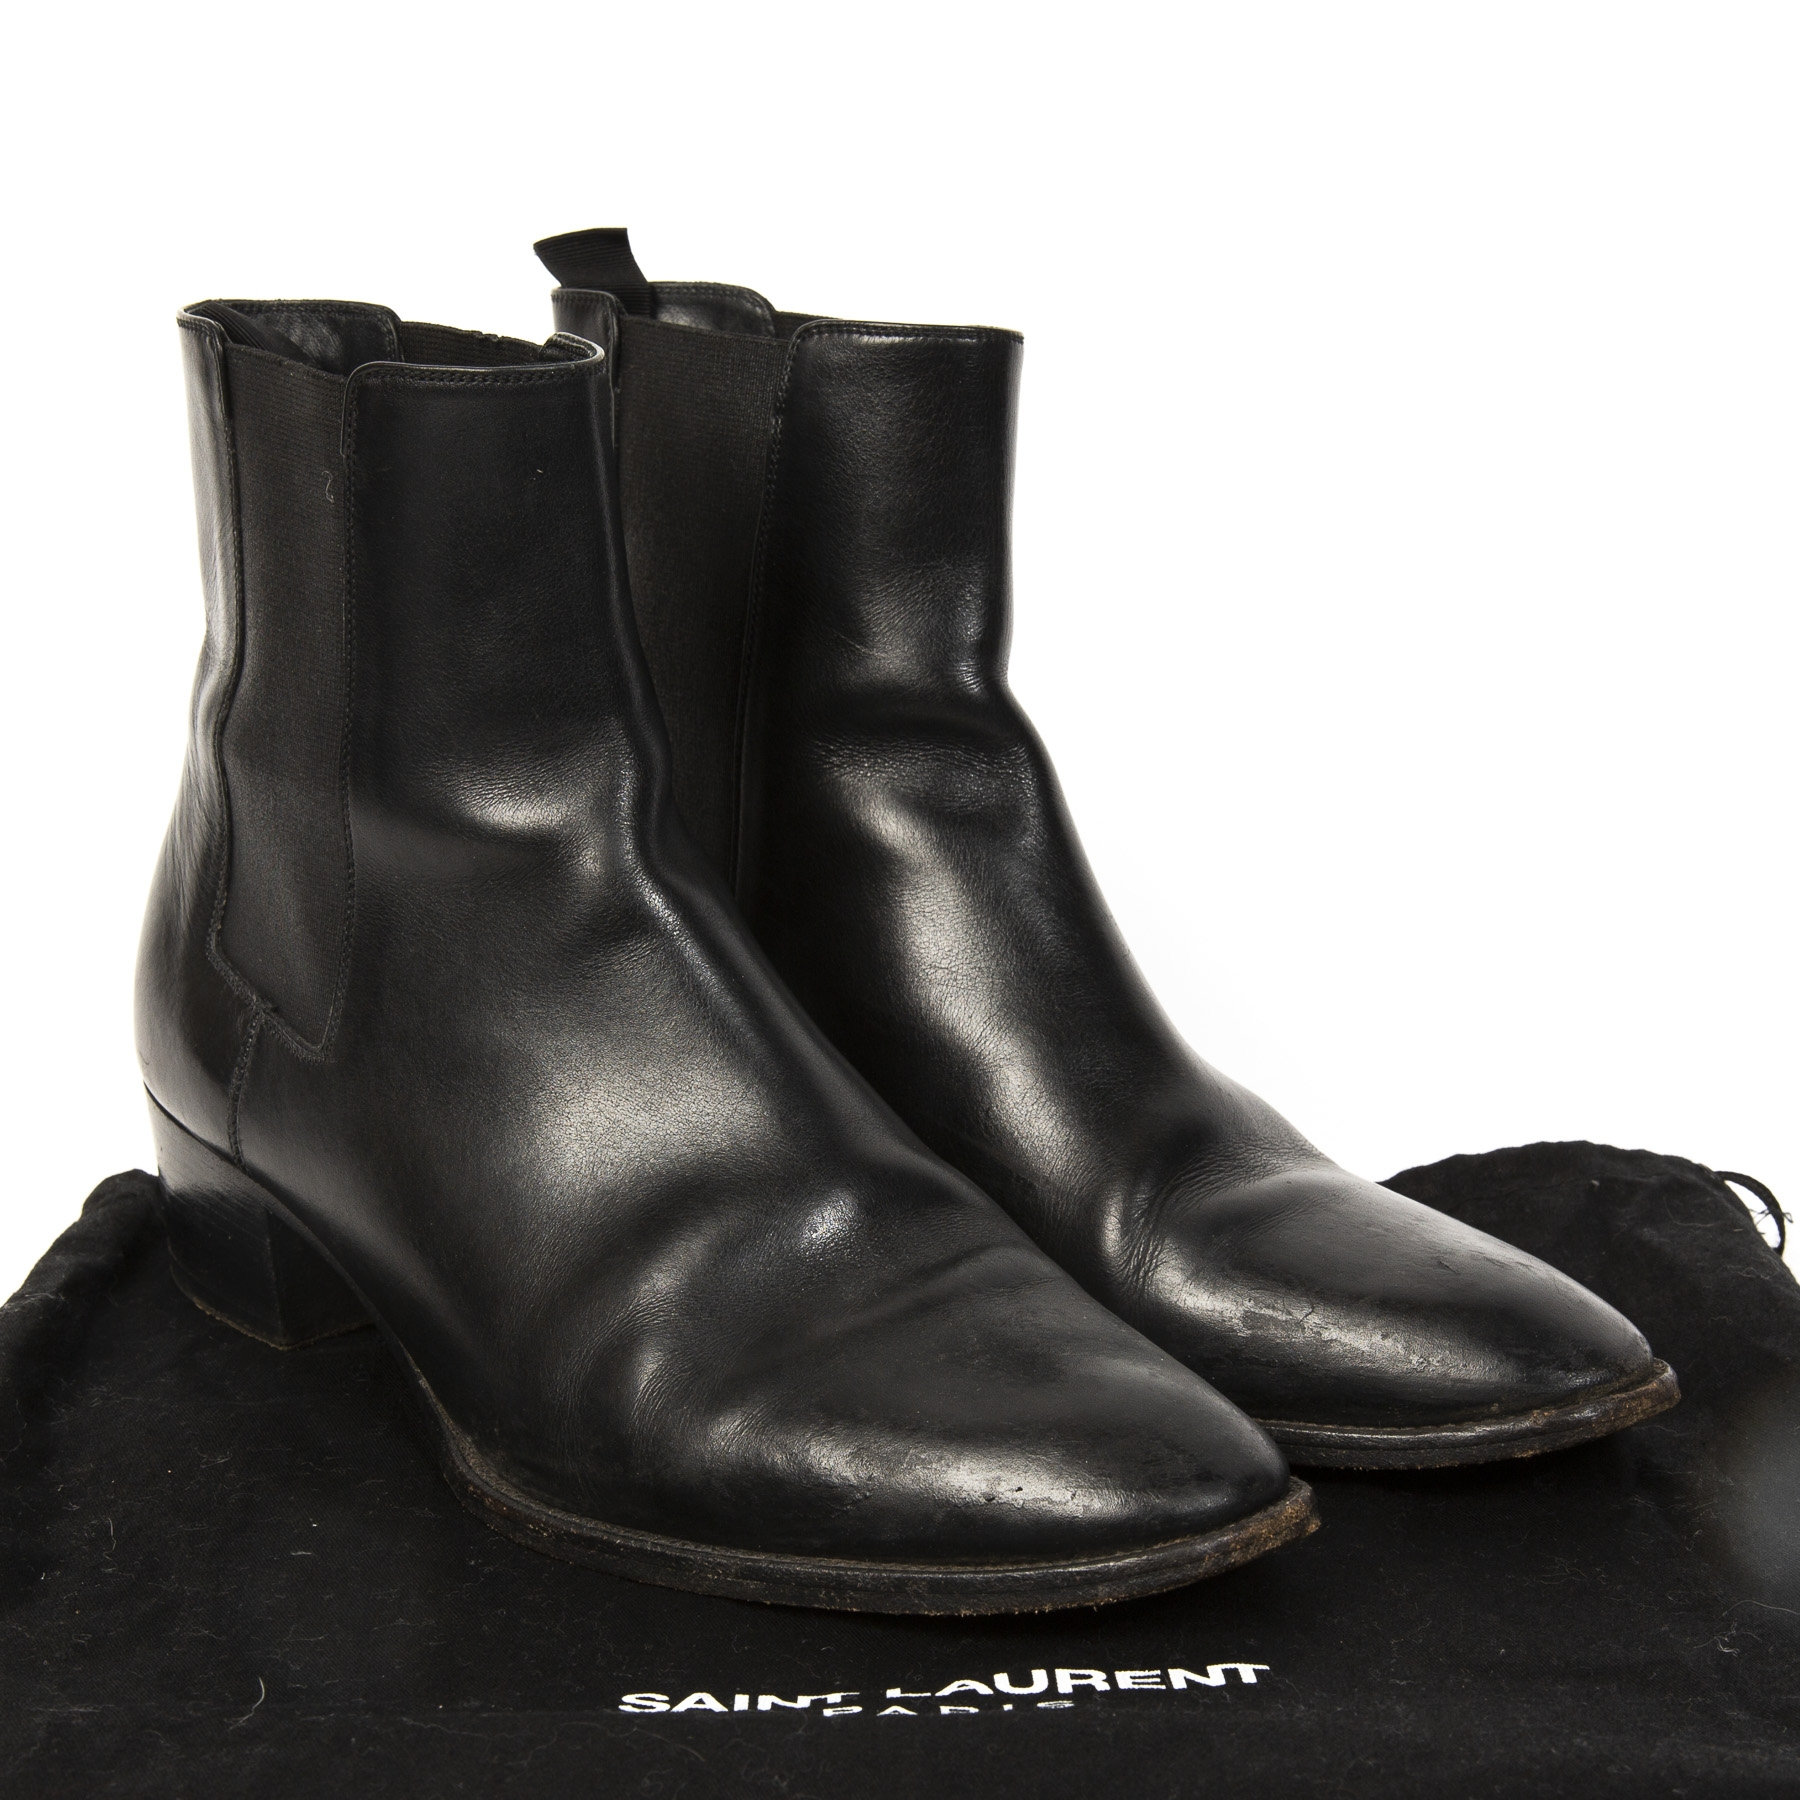 Yves Saint Laurent Black Ankle Boots - Size 39. Buy authentic designer YSL secondhand shoes boots at Labellov at the best price. Safe and secure shopping. Koop tweedehands authentieke YSL schoenen bij designer webwinkel labellov.